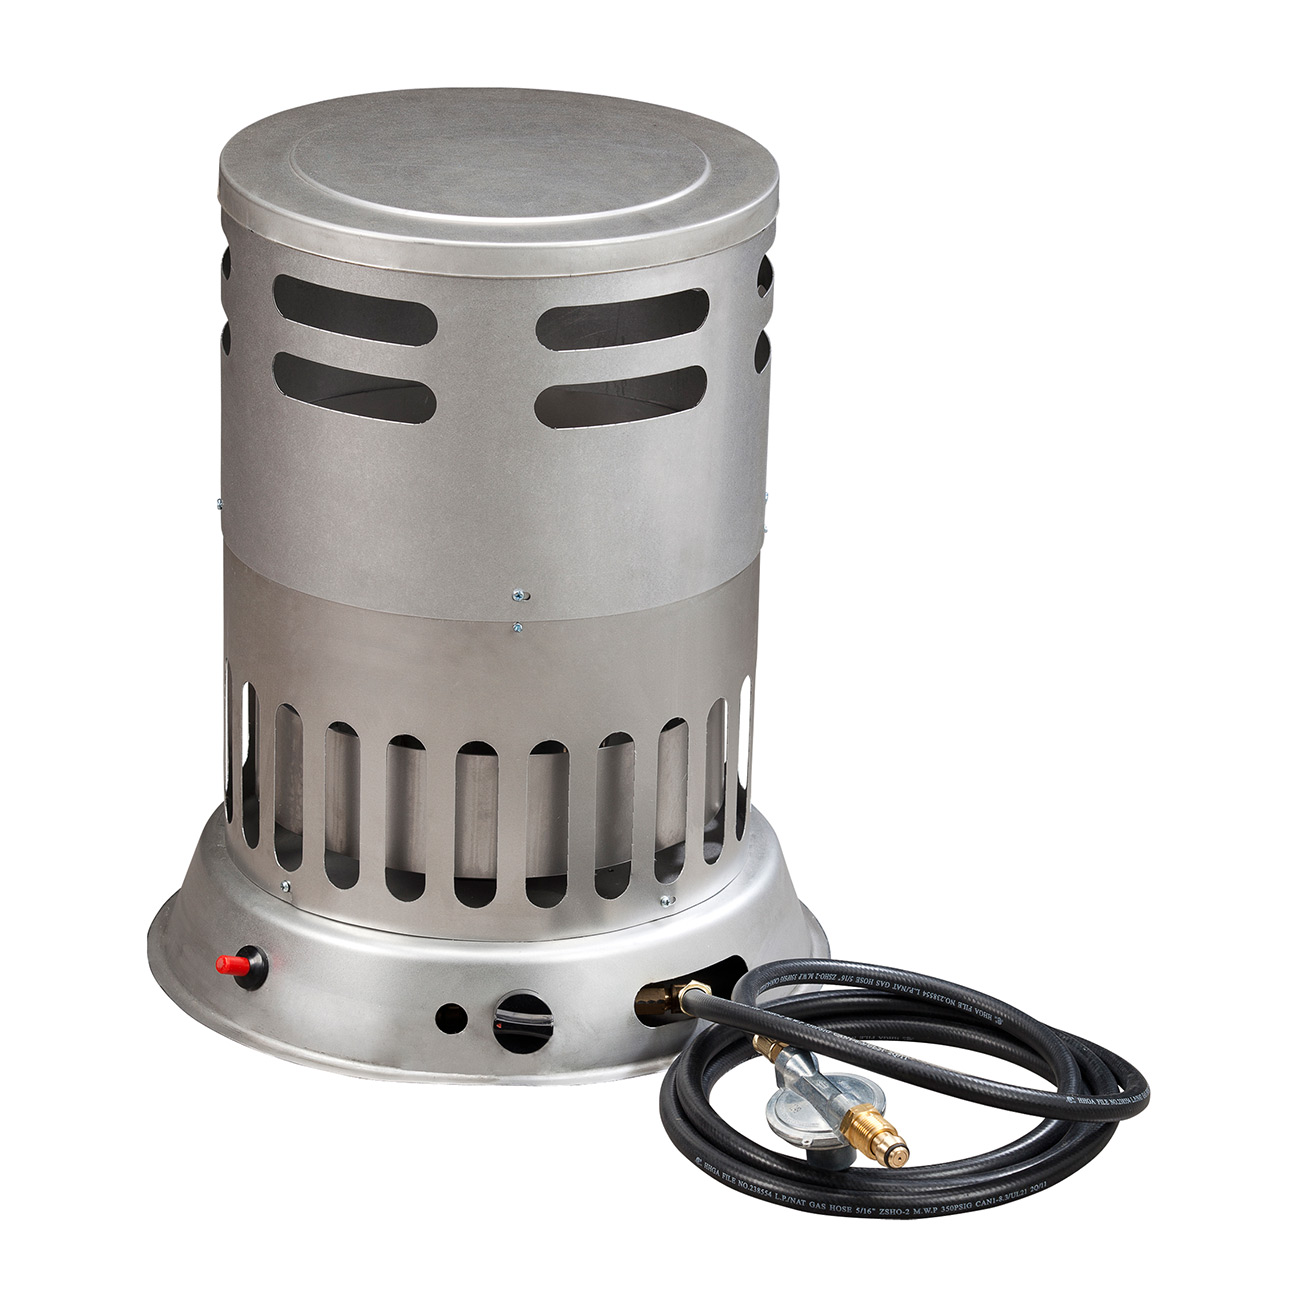 Portable propane convection heater 80 000 btu procom for Best propane heating systems